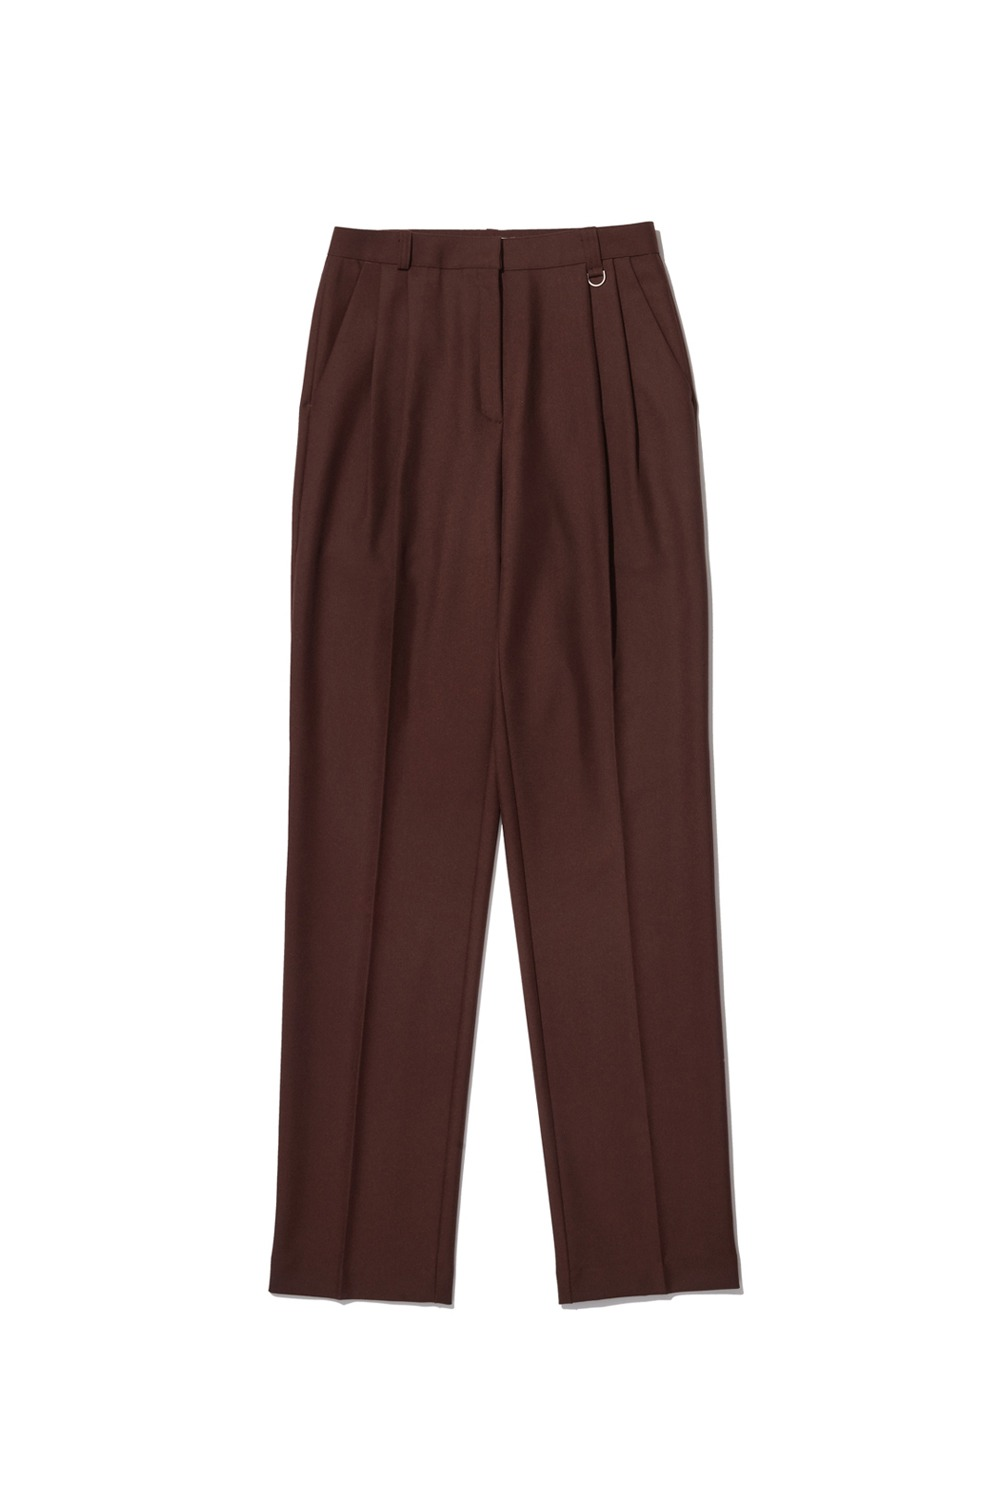 PROJECT MAGO_TAILORED PINTUCK TROUSERS_BROWN